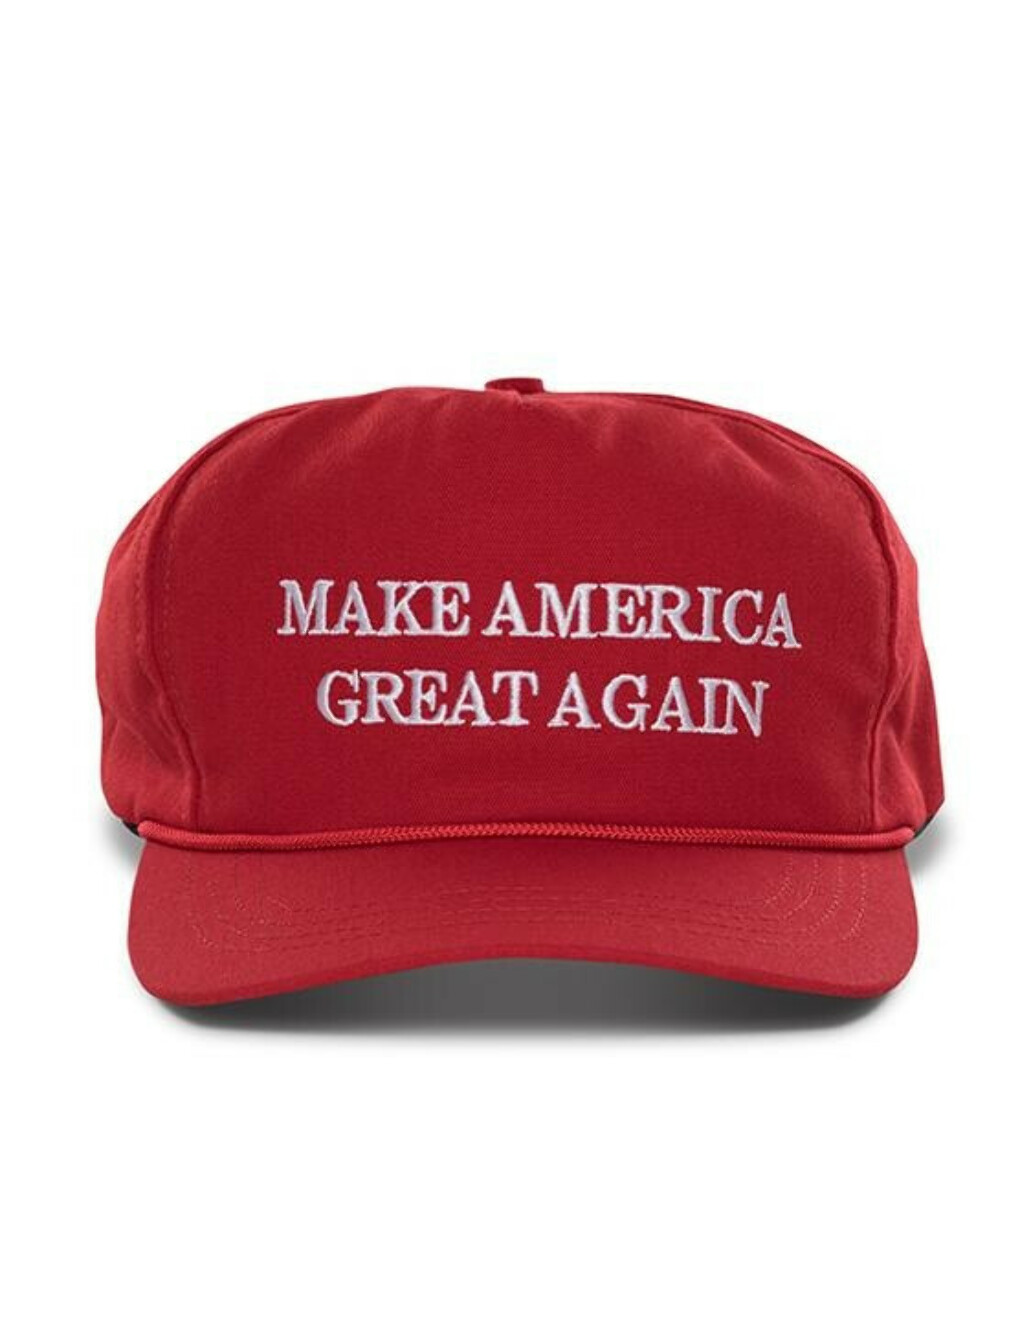 Official Donald Trump Make America Great Again Hat - Red